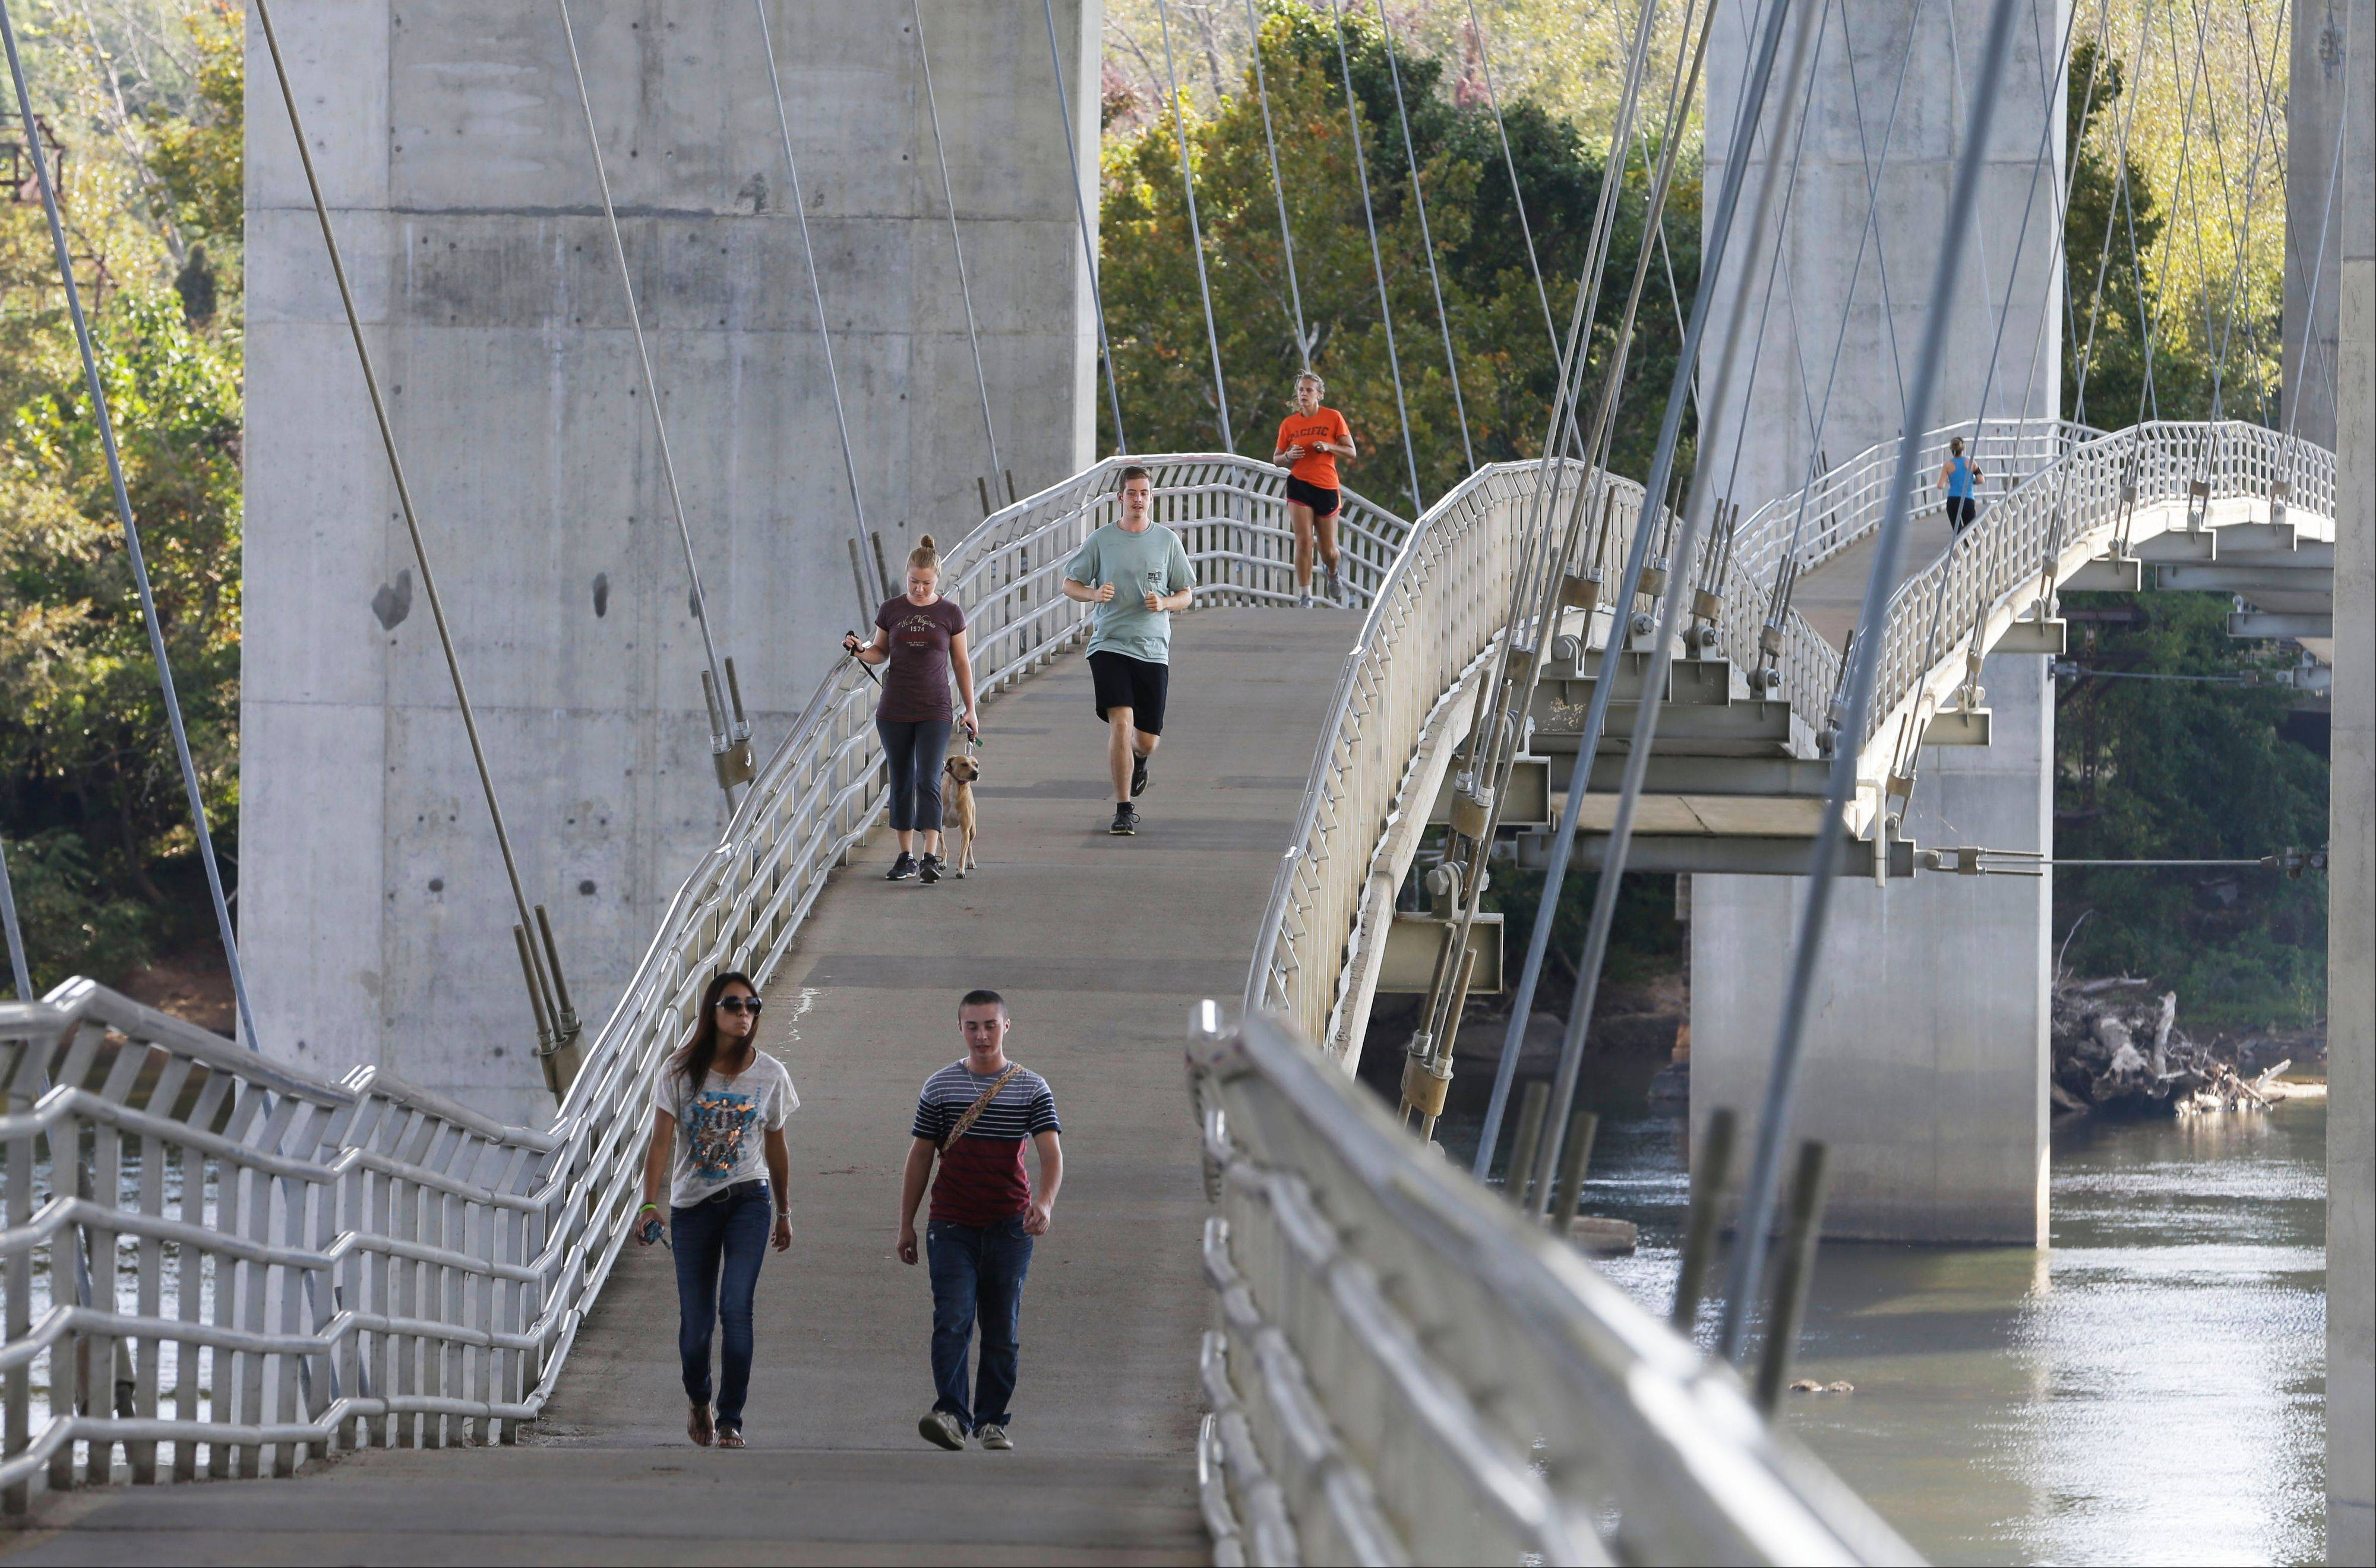 Runners and pedestrians traverse a bridge suspended under the Lee Bridge over the James River from Belle Isle in Richmond, Va.